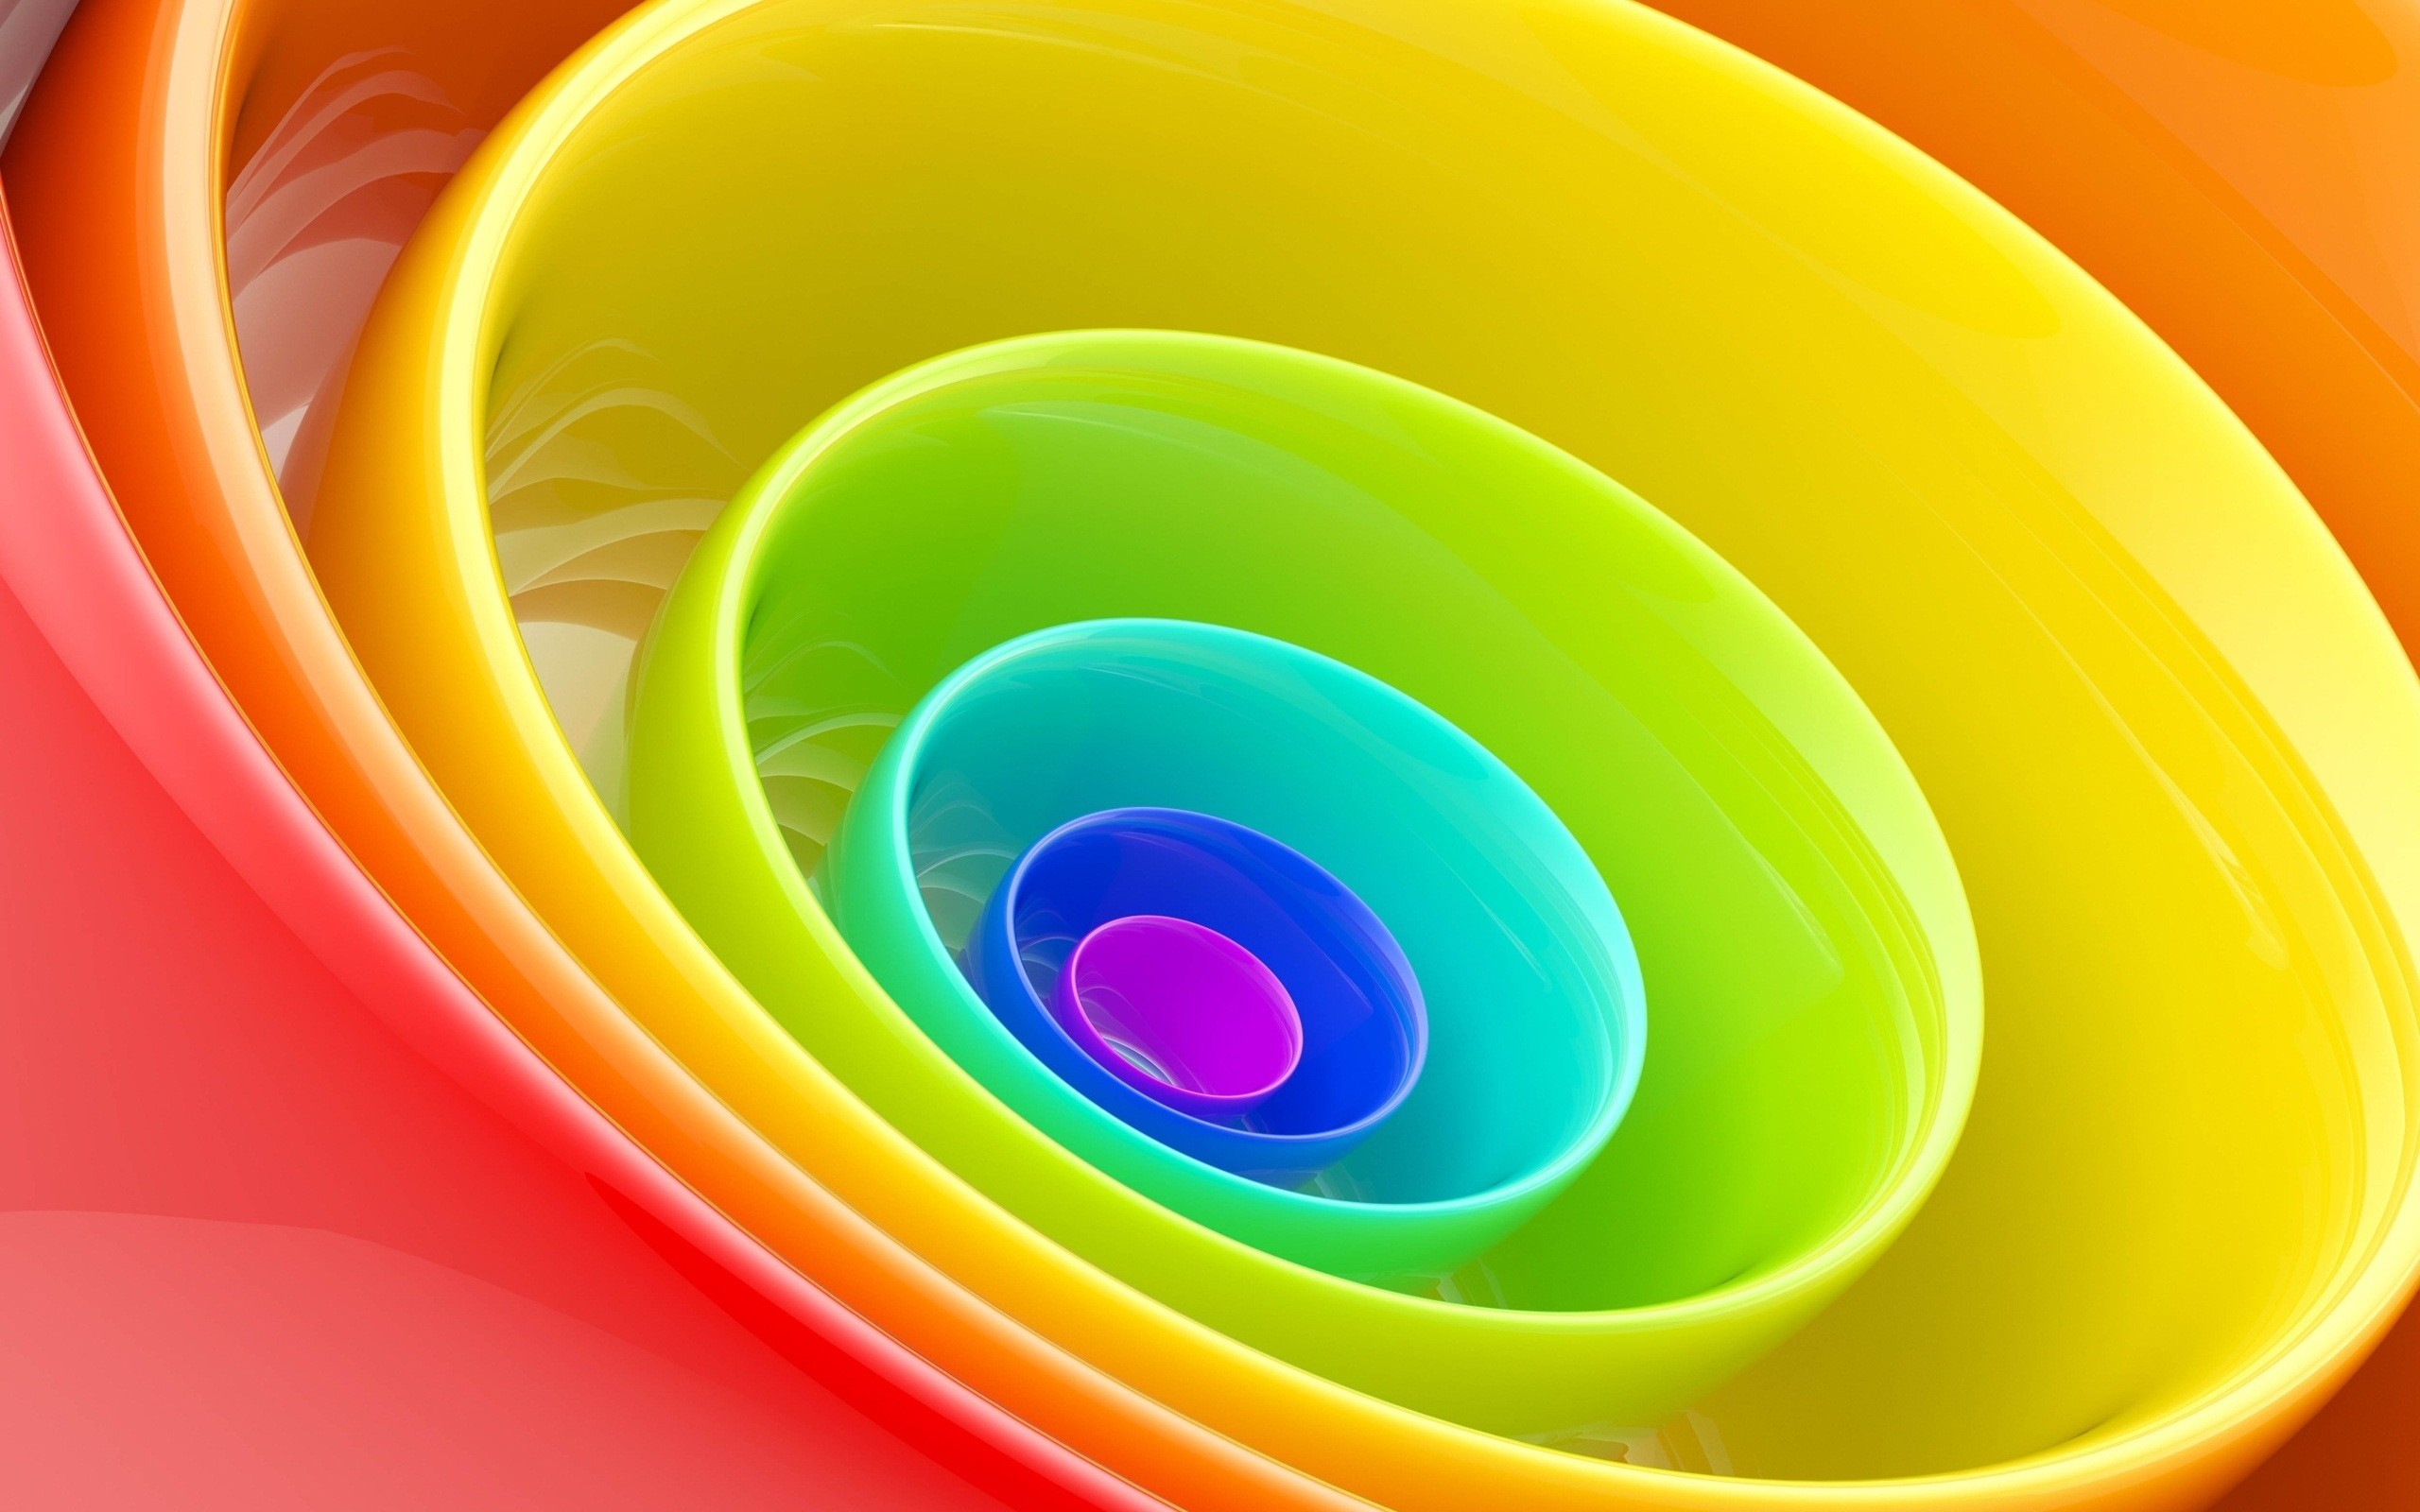 Res: 2560x1600, 3d Rainbow Wallpaper 1080p #qYF